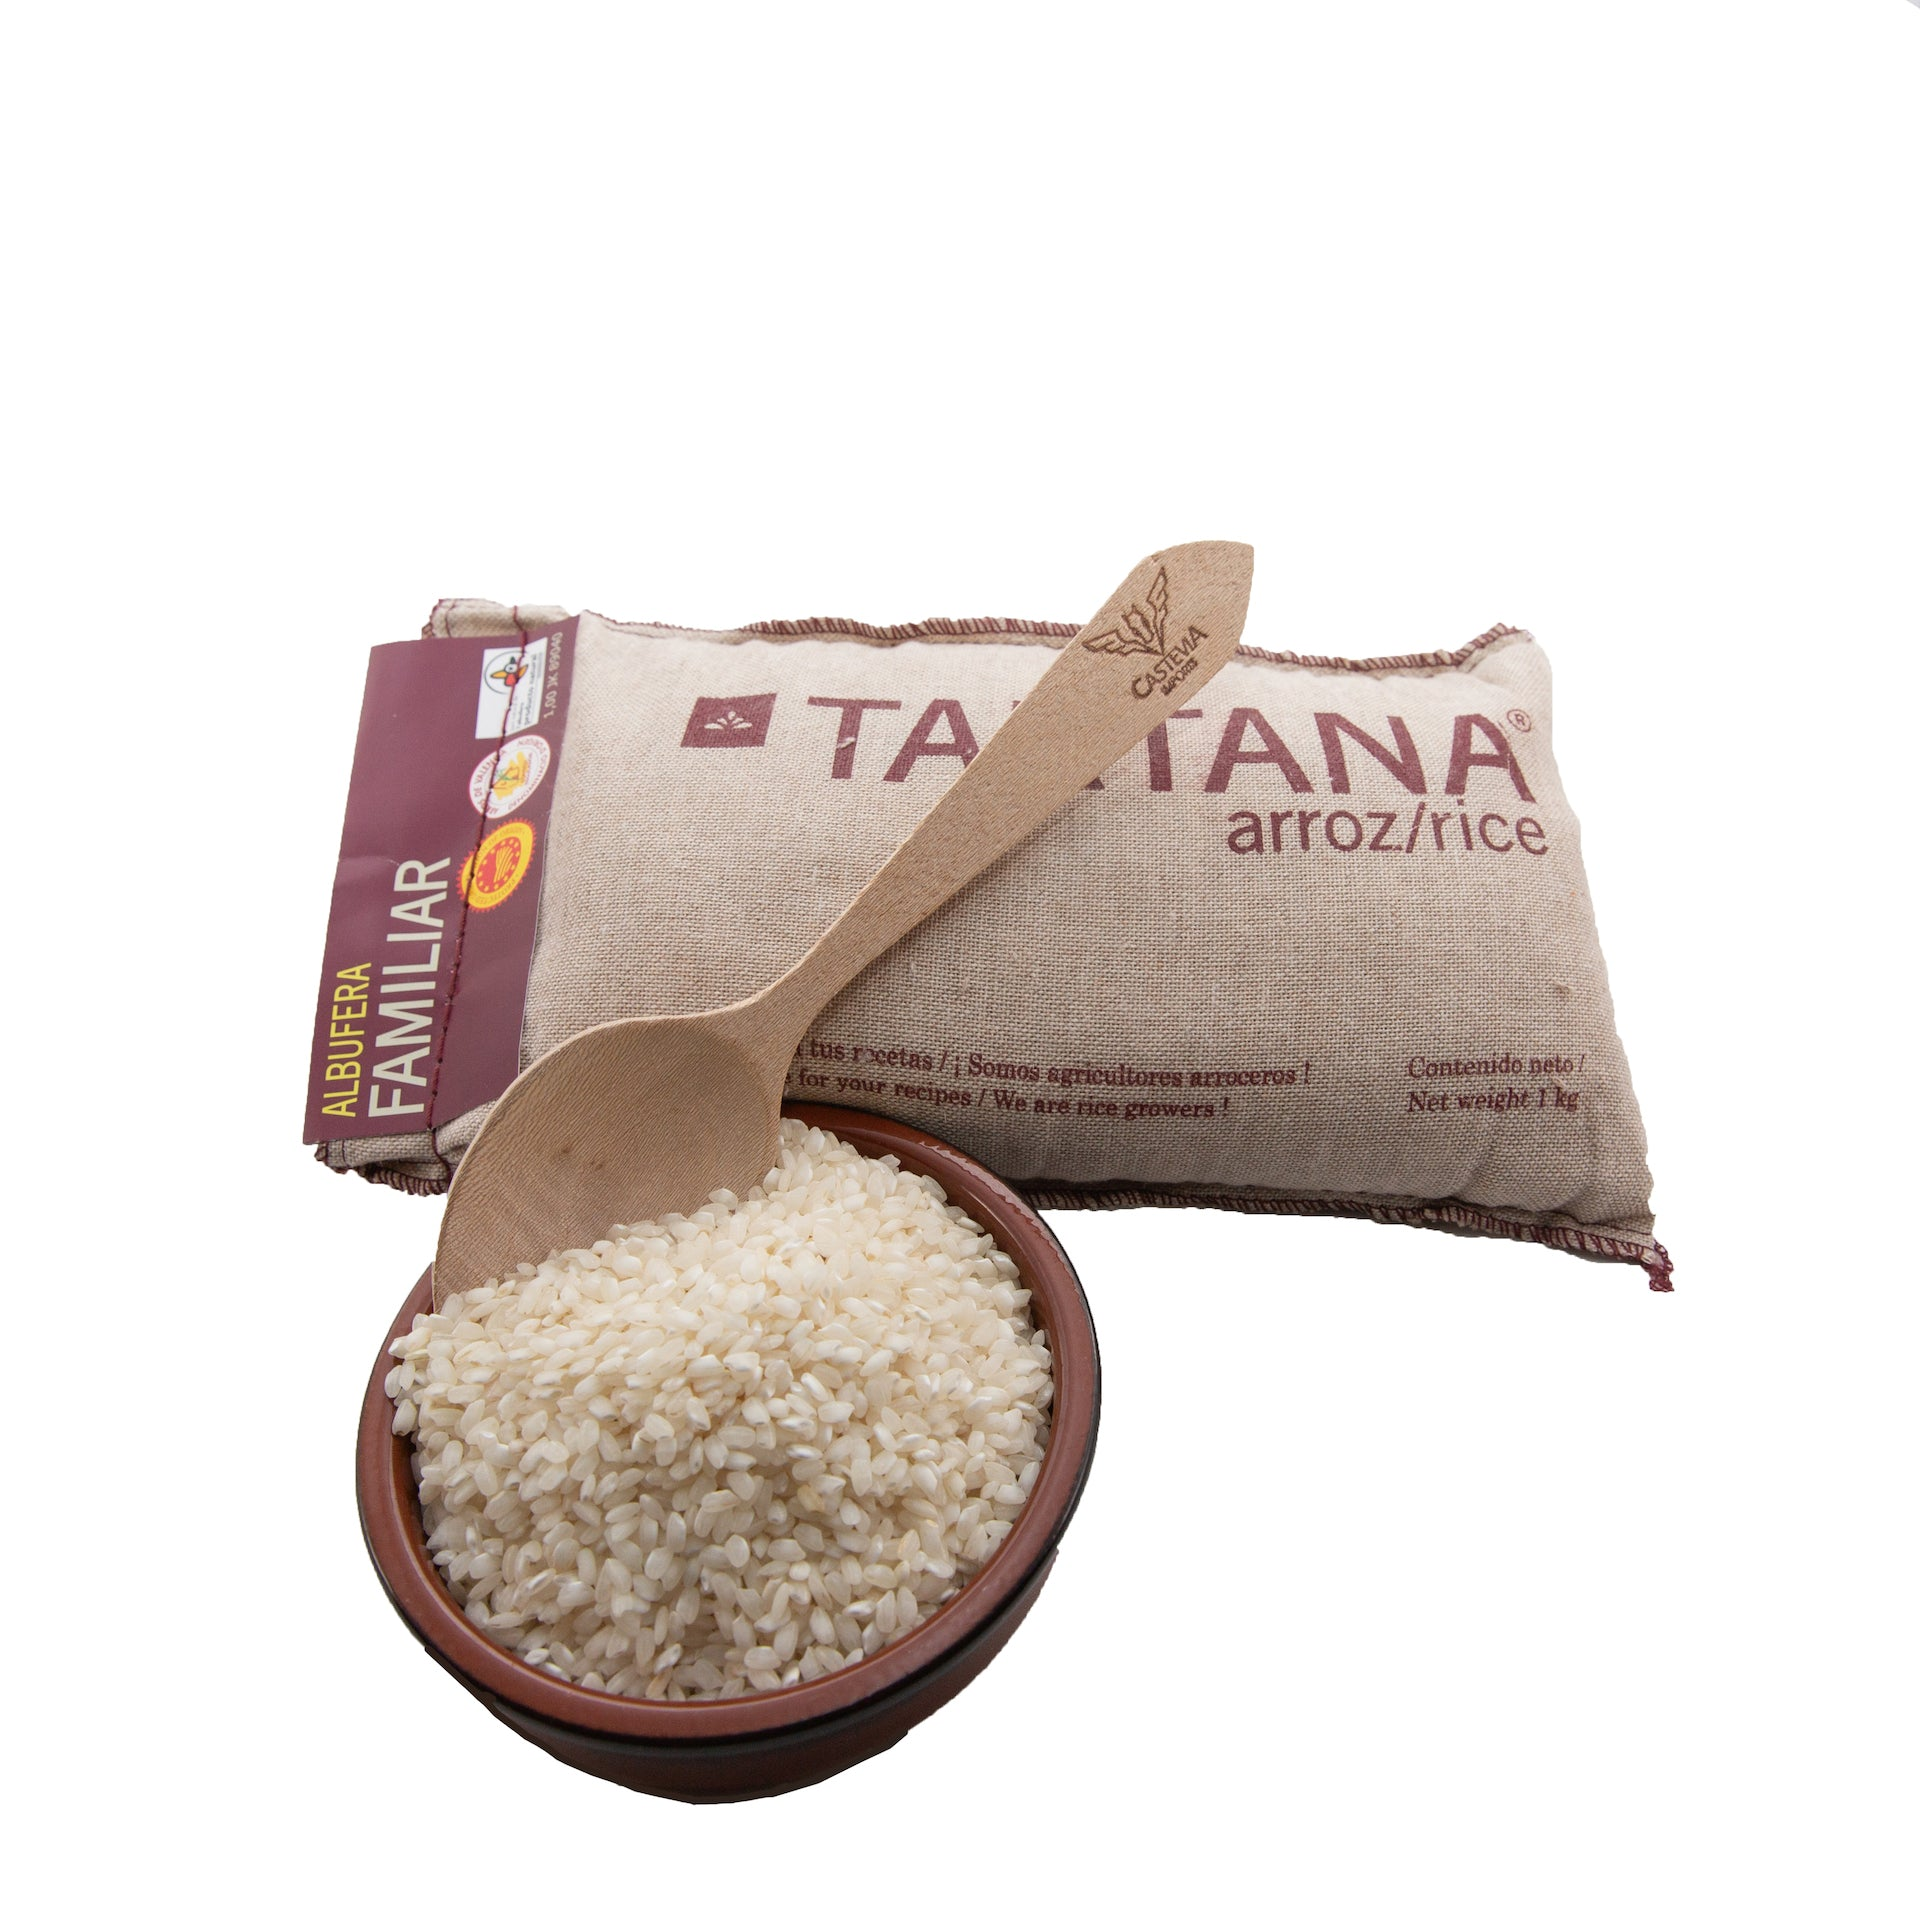 Albufera Rice by Tartana  - 2.2 lb (1 kg)